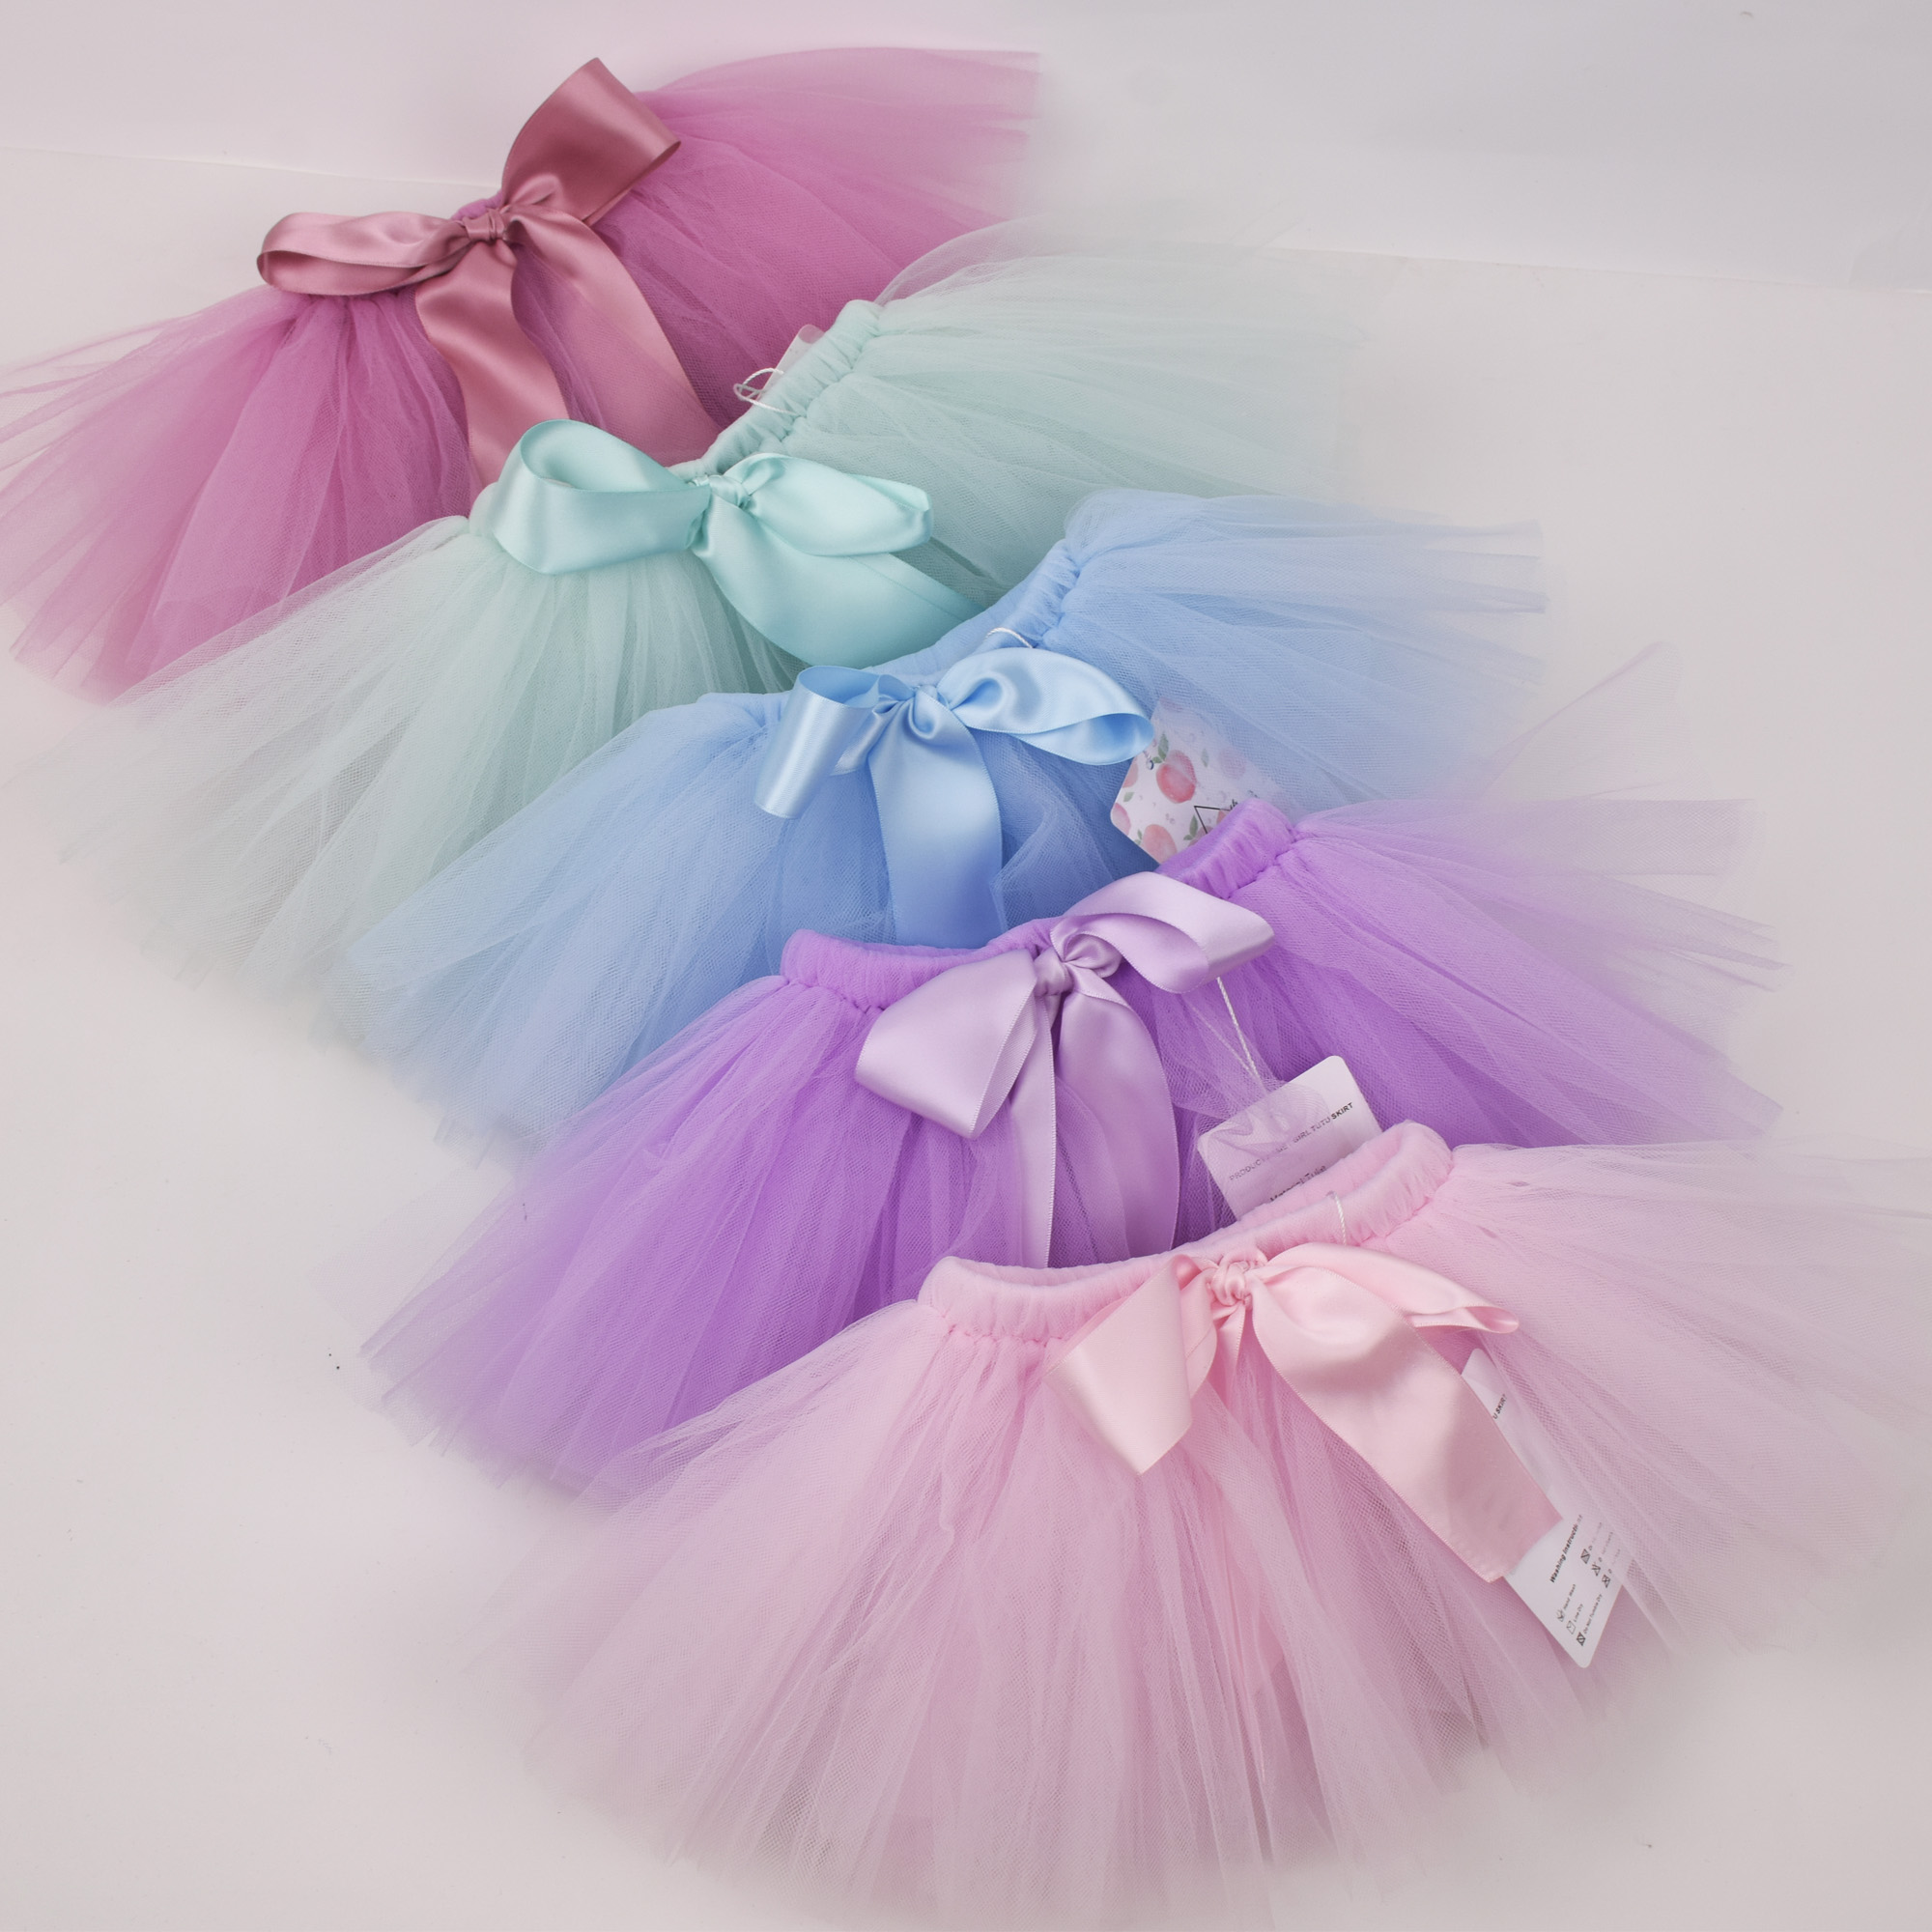 6-Layer Fluffy Tulle Skirt with Built-in Shorts 0-7T Newborn Baby Girl Tutu Headband Set Toddler 4